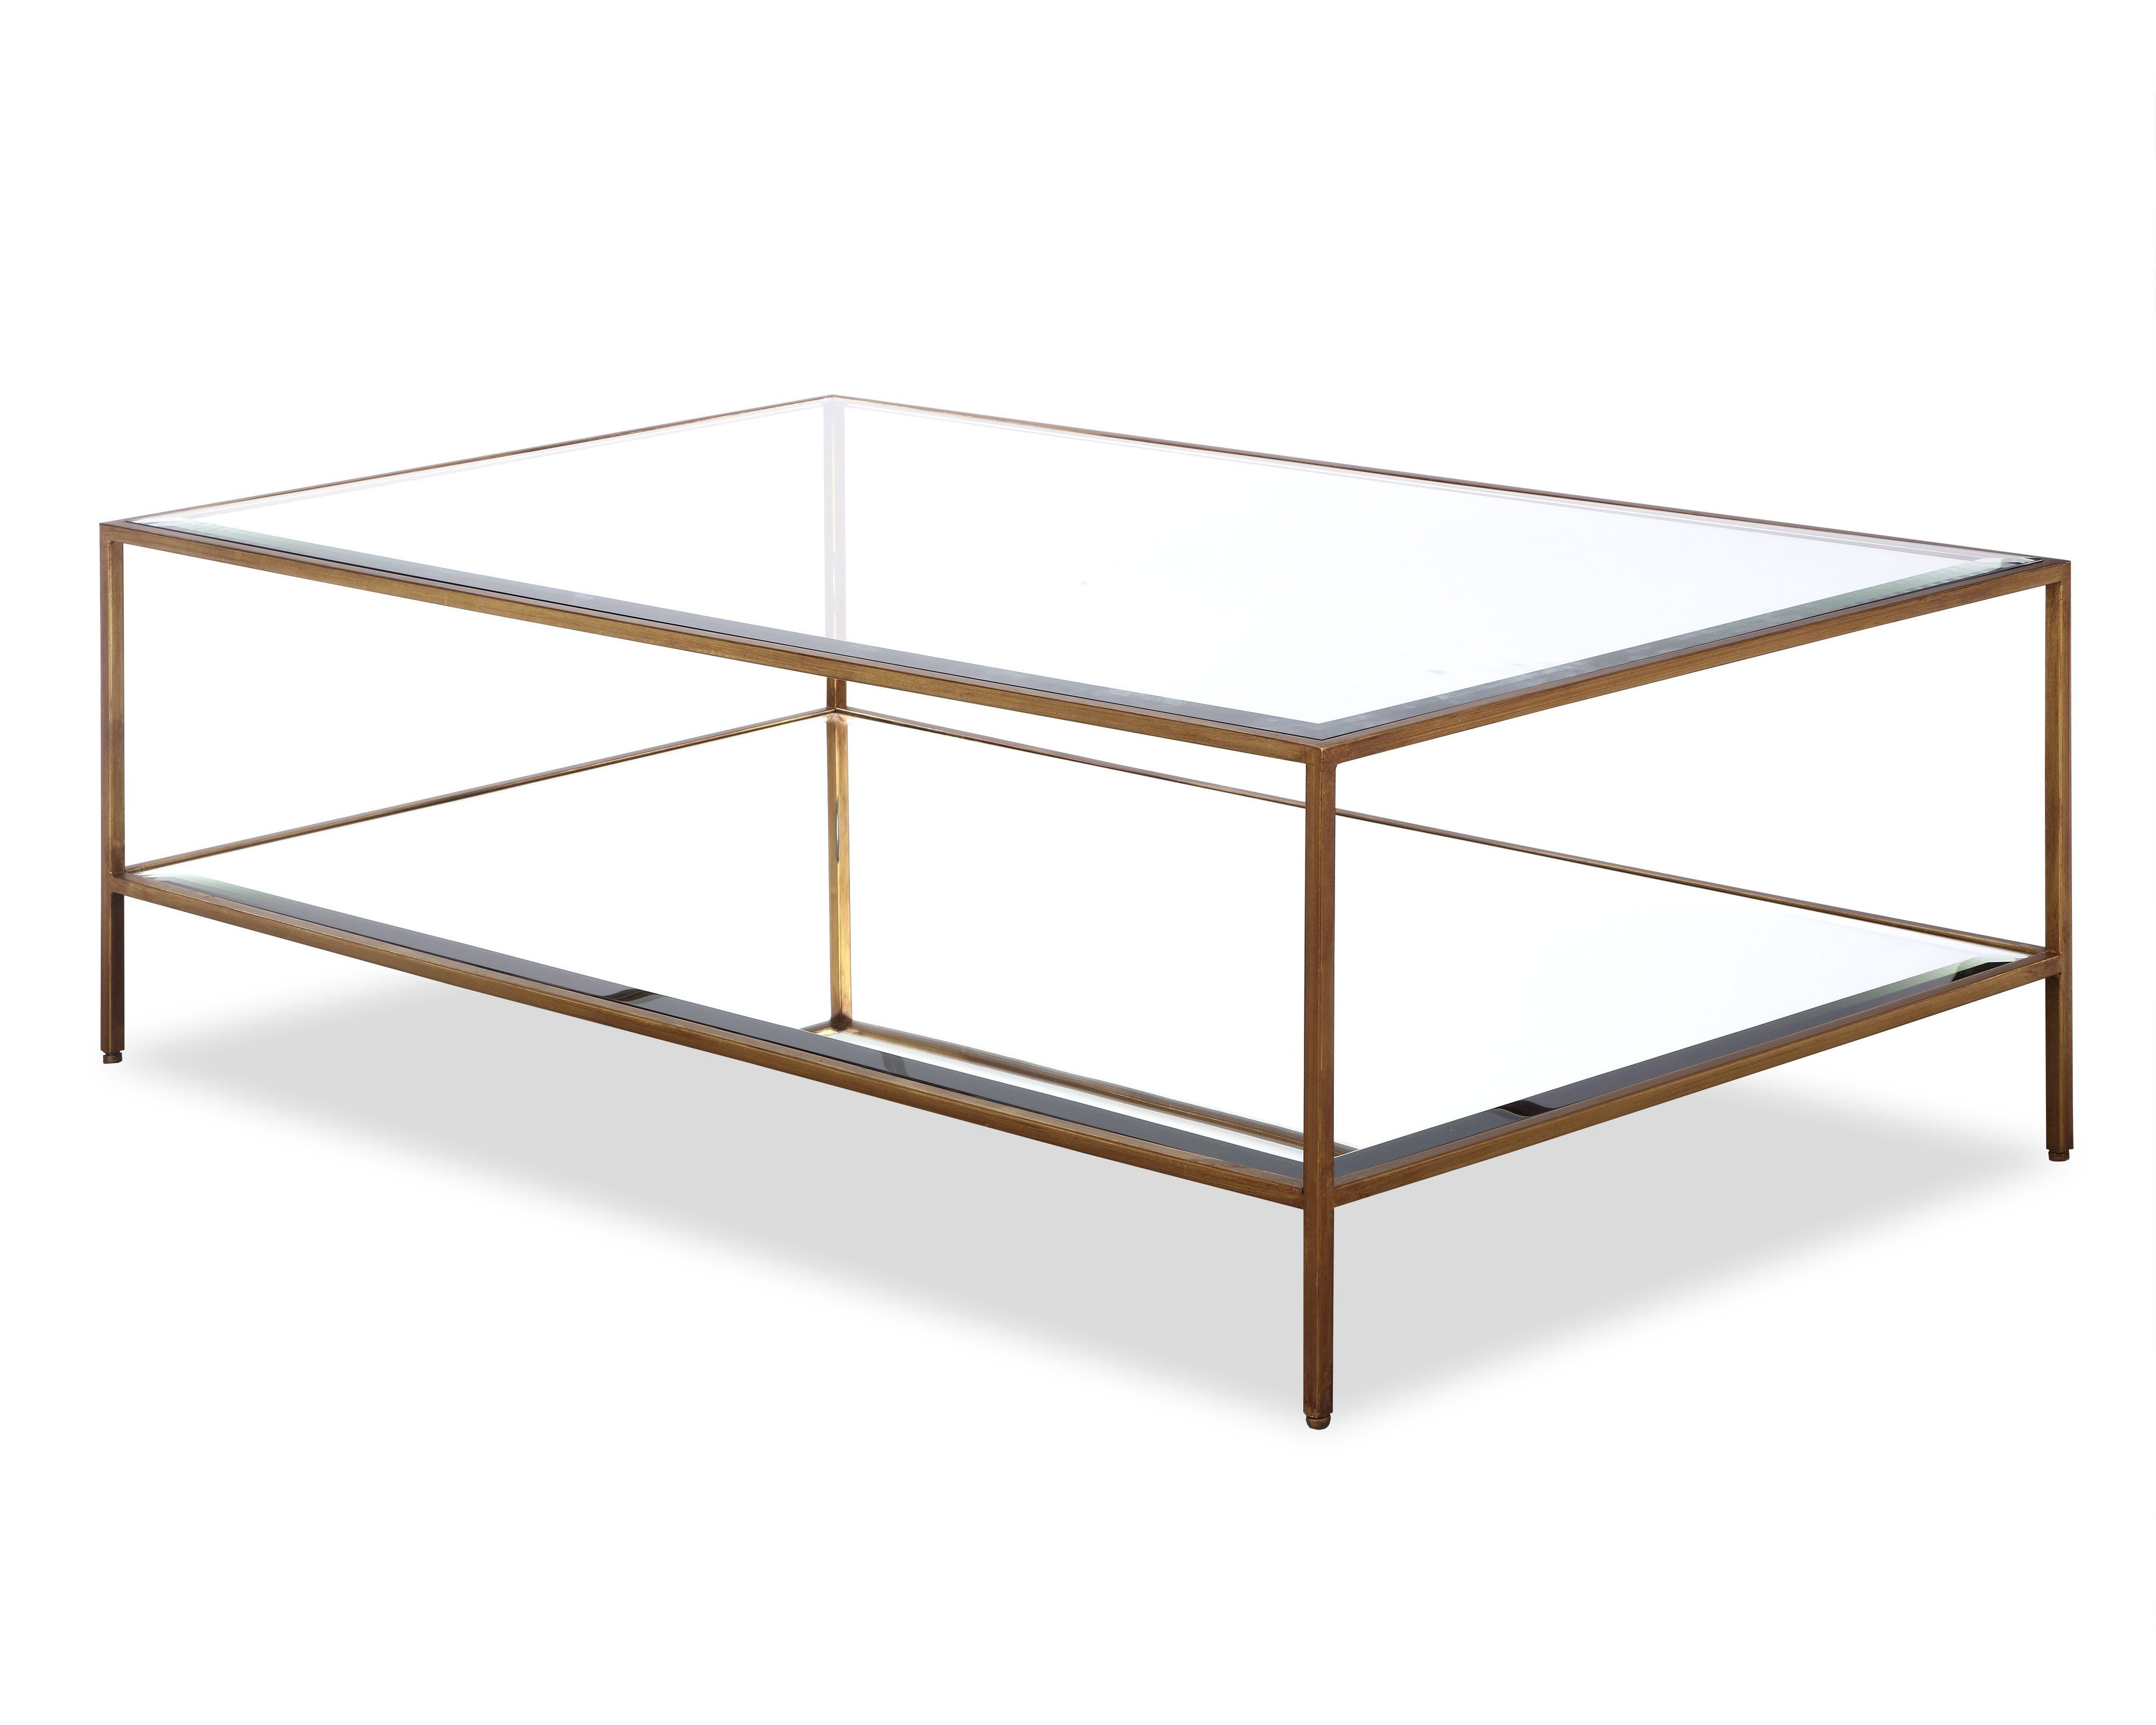 Oliver Coffee Table Antique Gold Glass Top Mirror Shelf Allissias Attic Antique Gold Coffee Table Coffee Table Coffee Table Steel Frame [ 3200 x 4000 Pixel ]